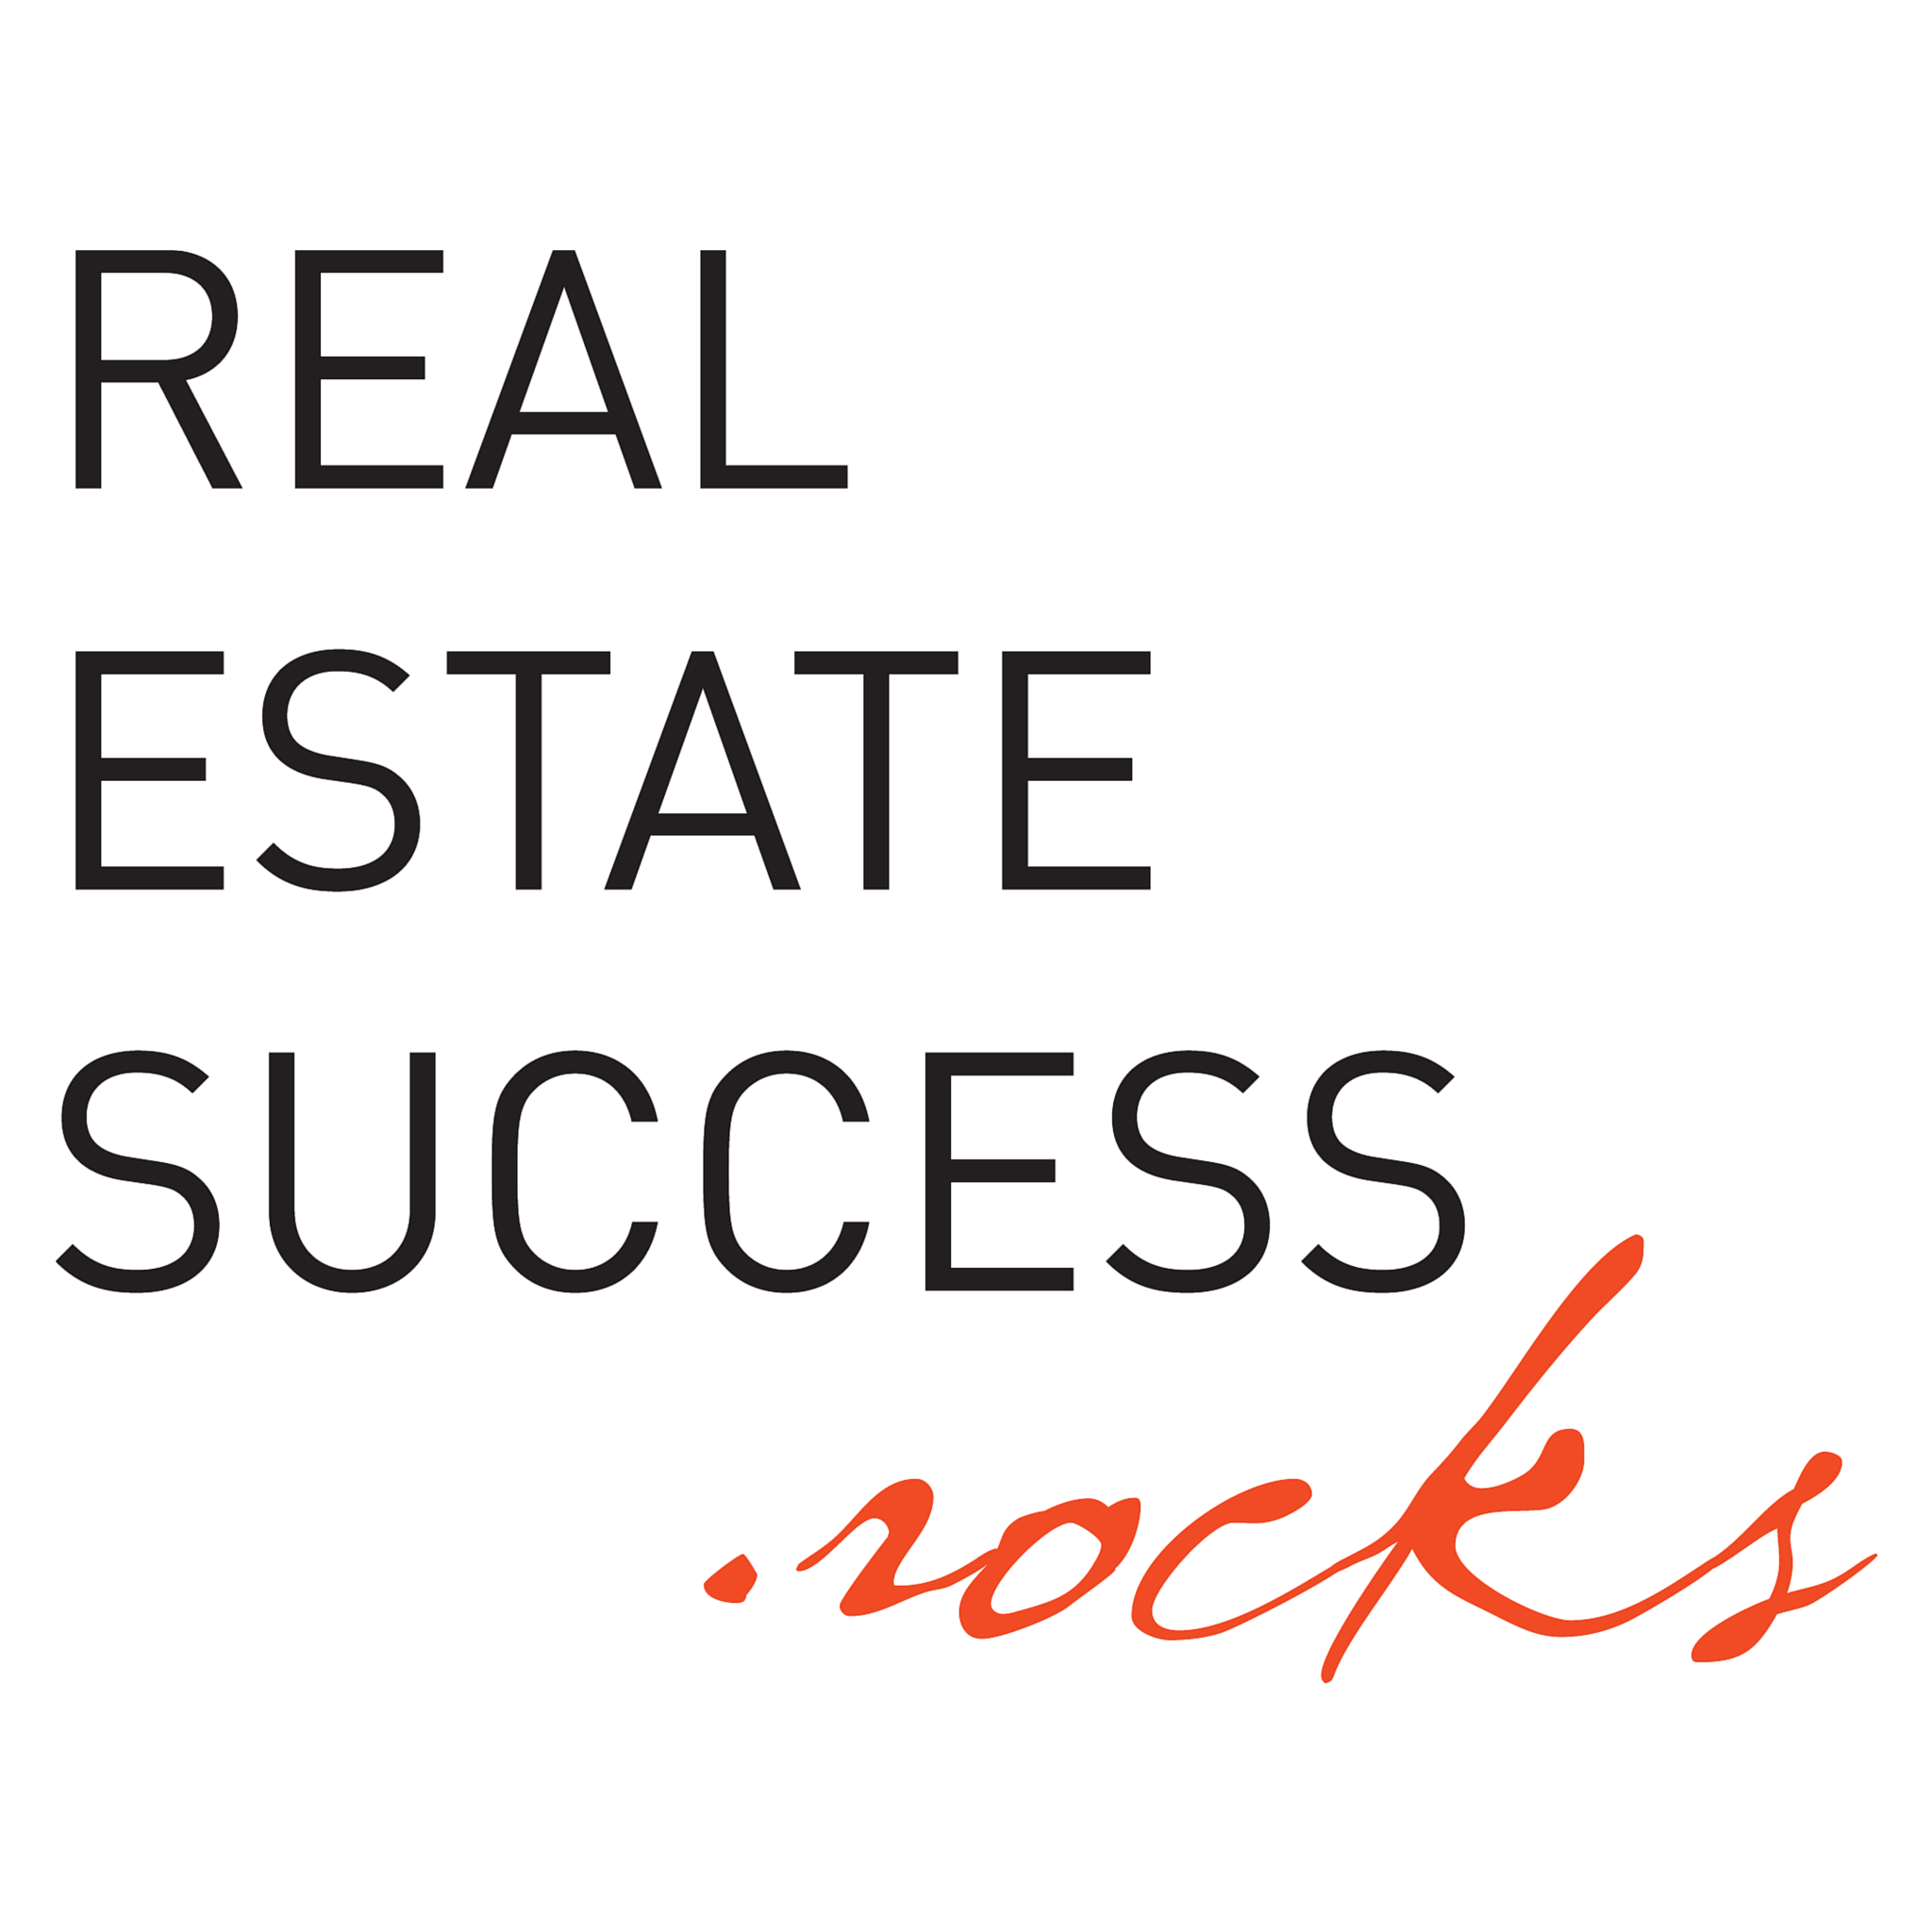 Real Estate Success Rocks   Top Producing Agents Who Value Excellence, Personal & Professional Growth show art